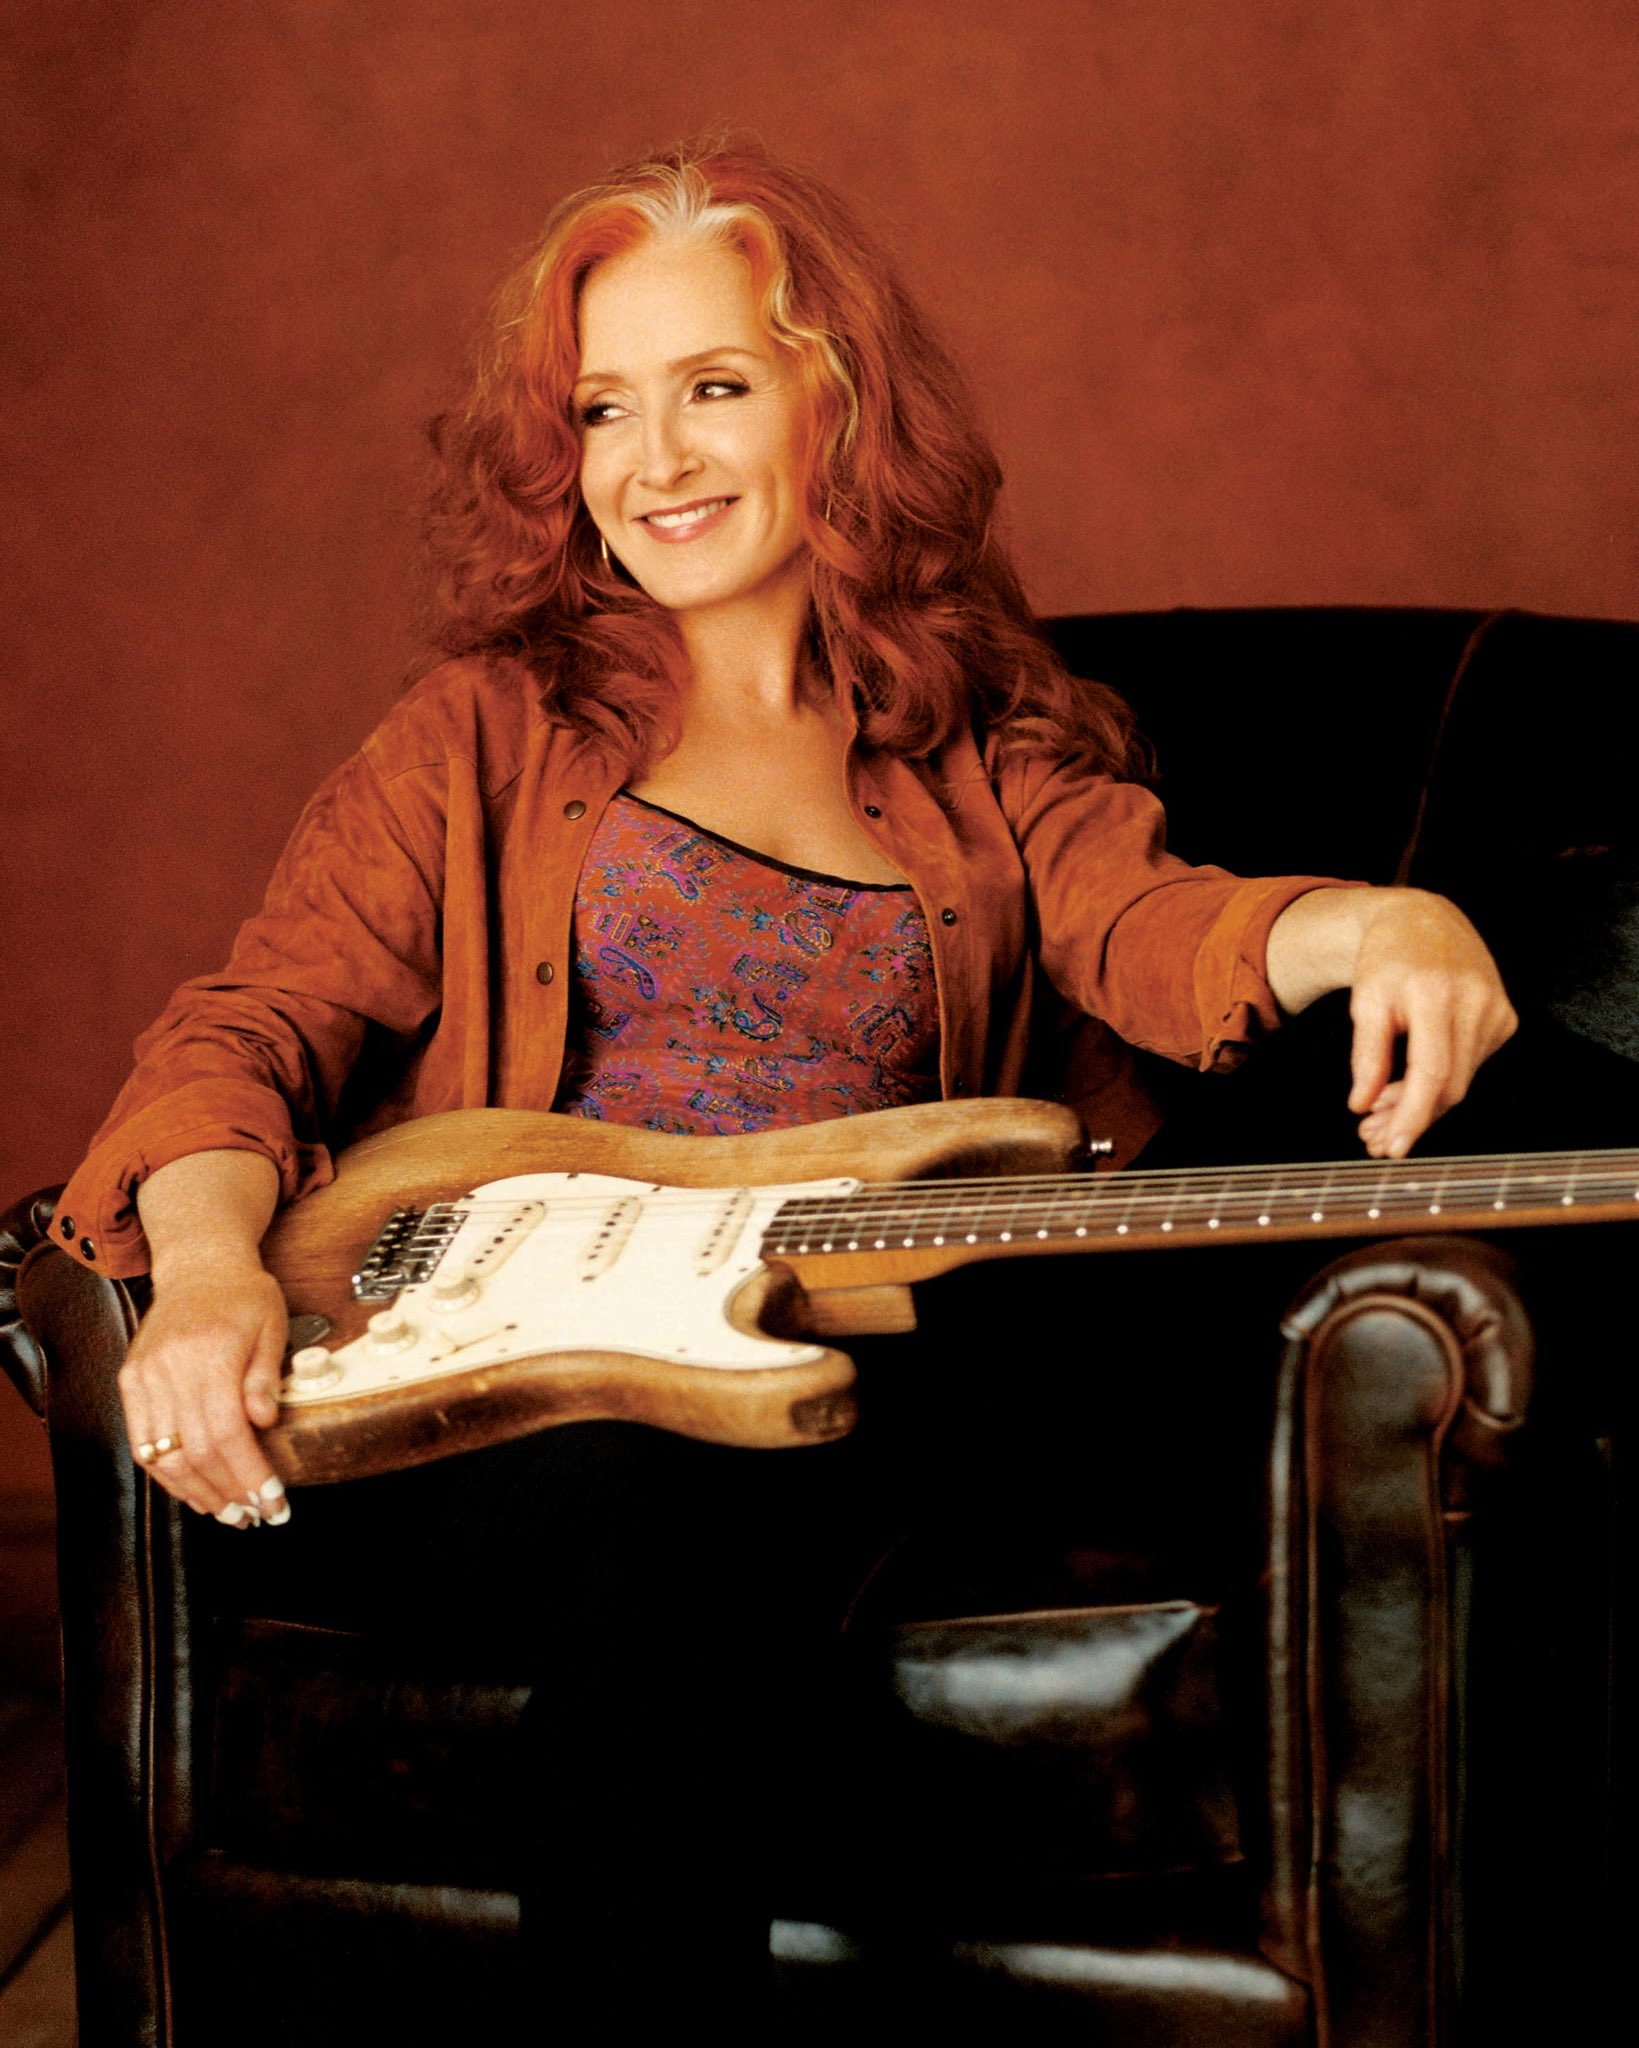 Also it s a Happy Birthday to Bonnie Raitt, born this day in 1949